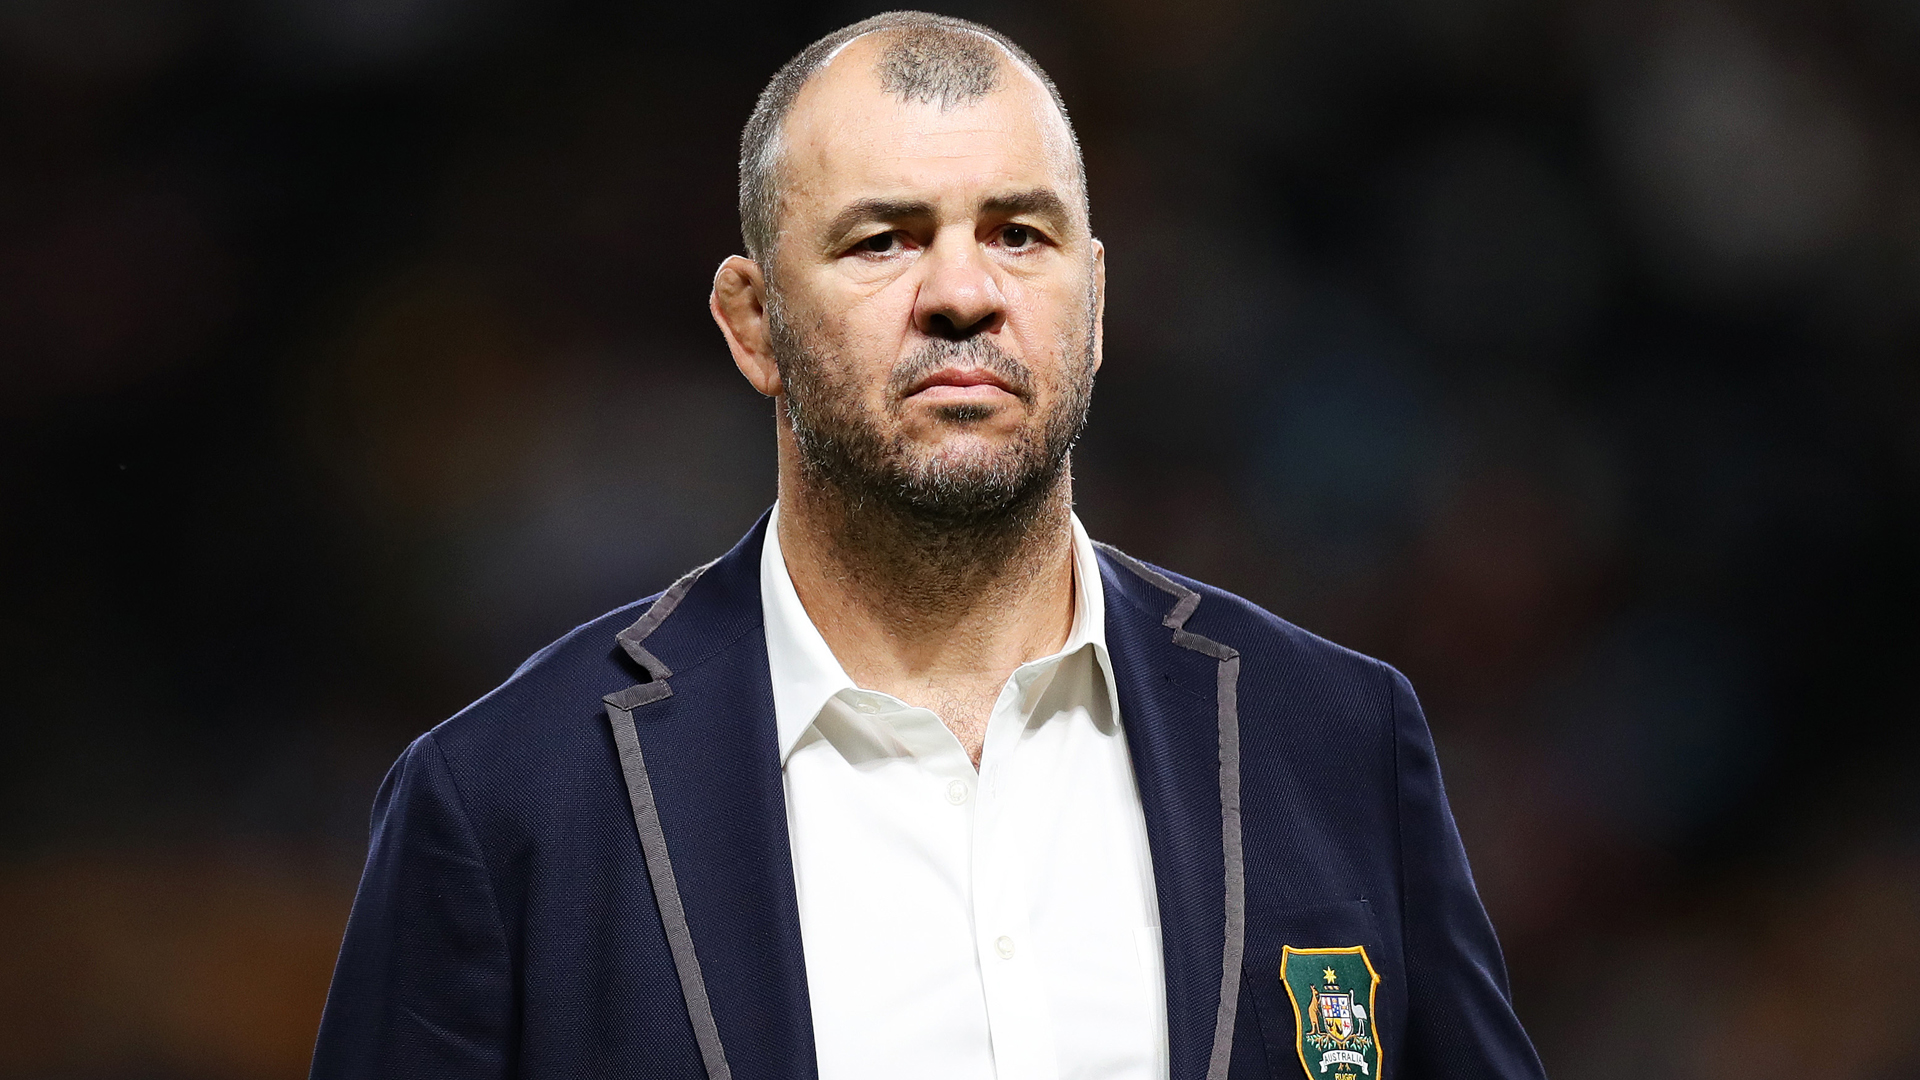 After Fiji referred a Reece Hodge tackle, Wallabies head coach Michael Cheika was unhappy.